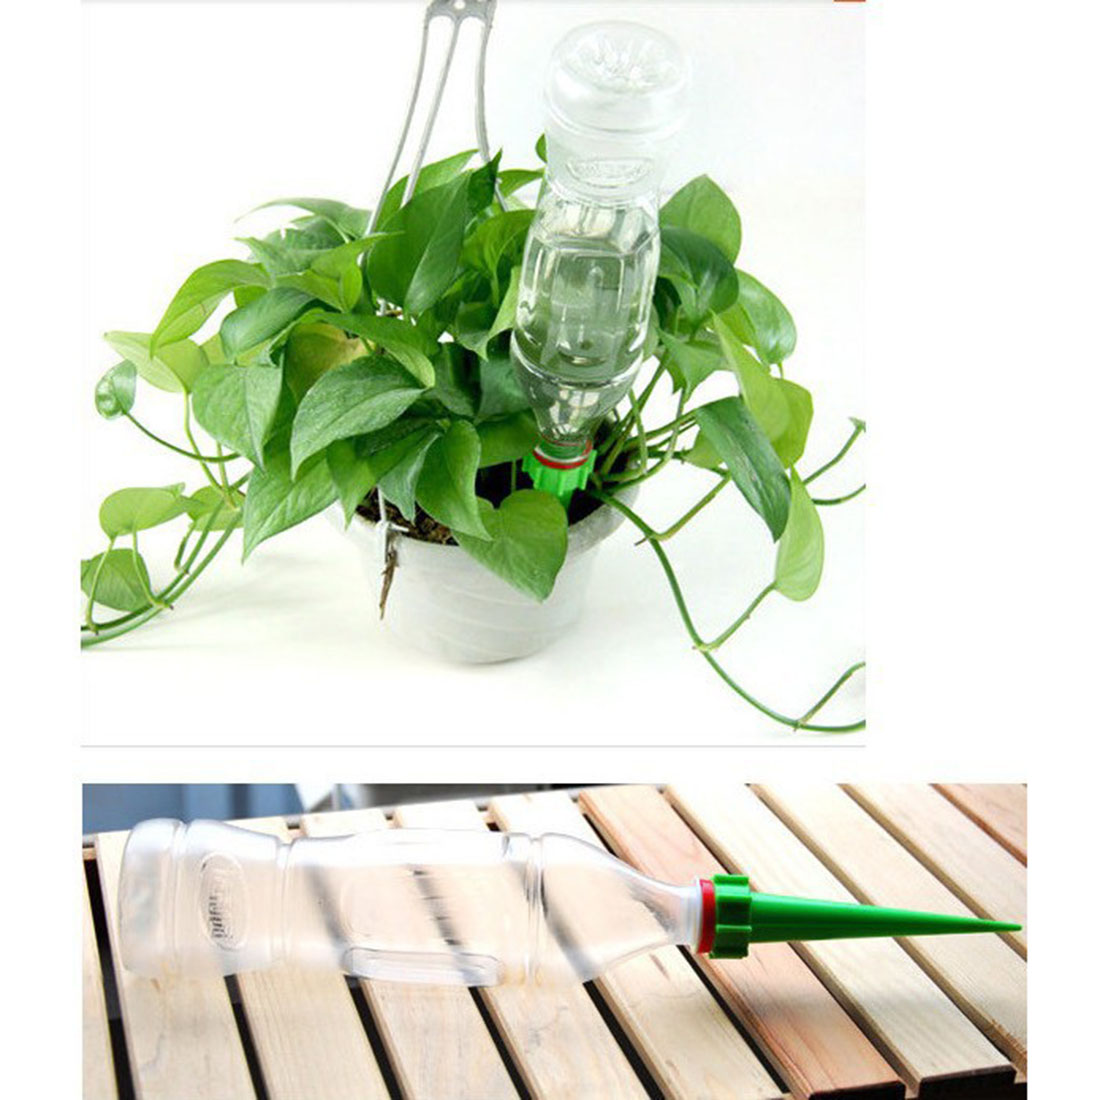 Automatic watering system for potted plants - 4pcs Automatic Plant Waterer Accessories Water Seepage Device For Potted Plant Outdoor Or Indoor Use